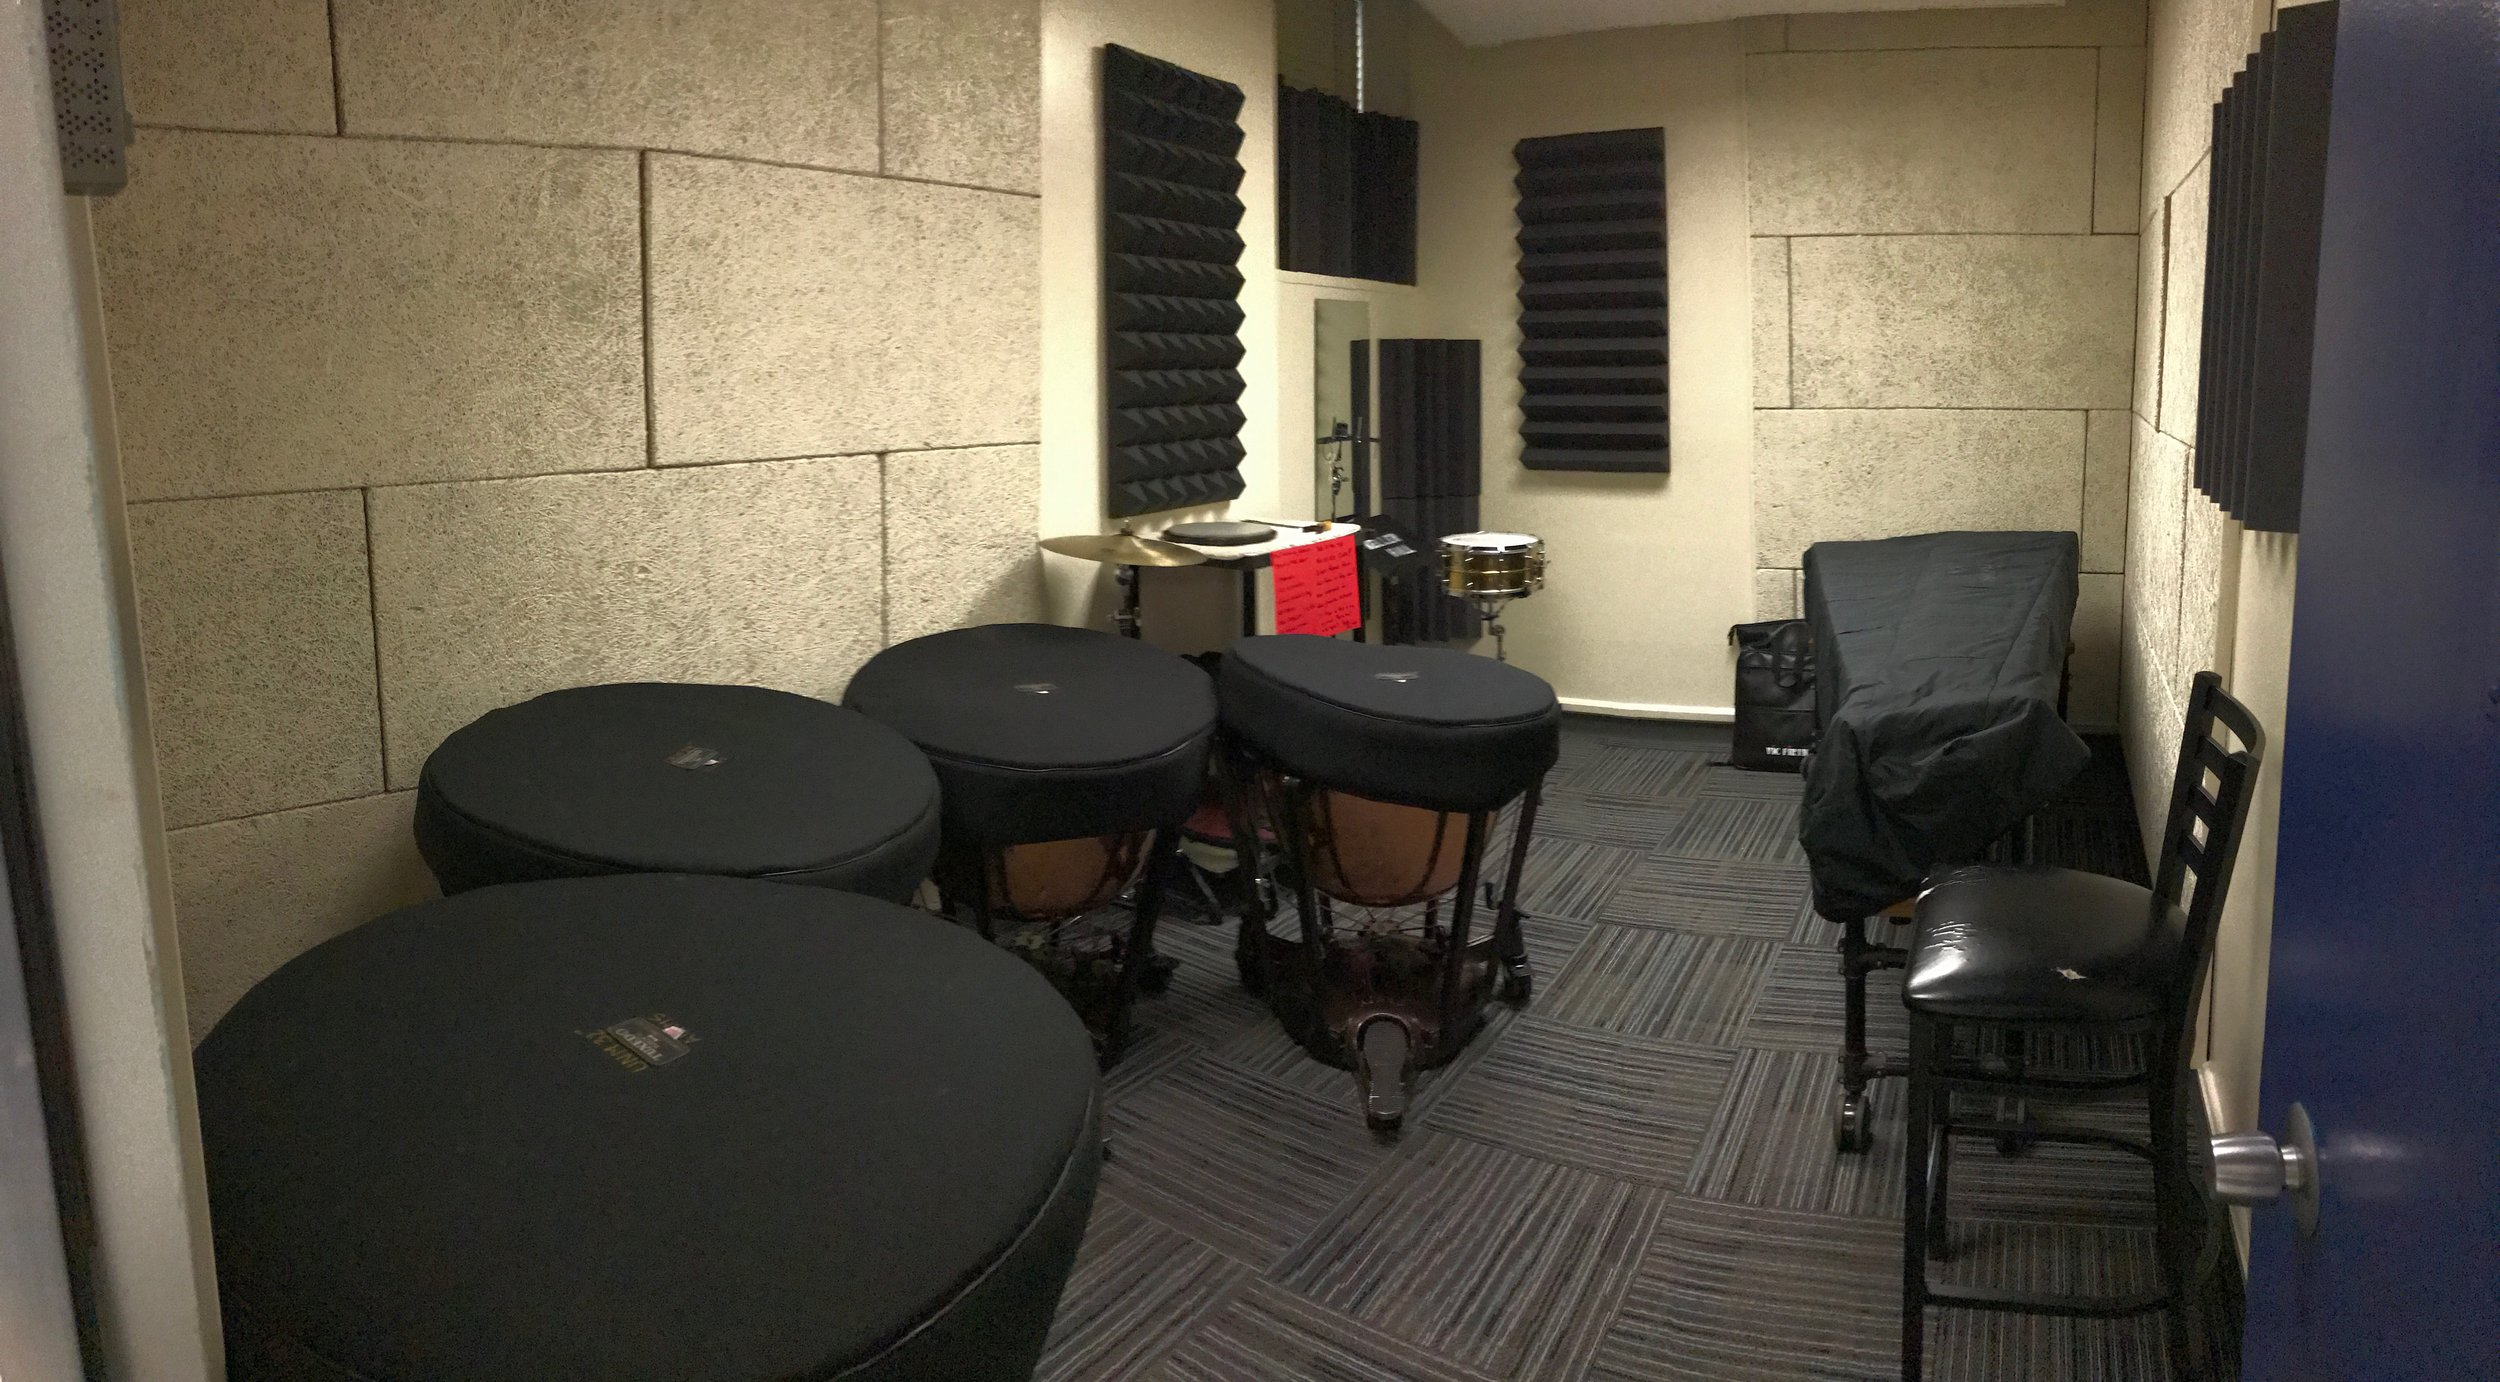 Percussion Room B240